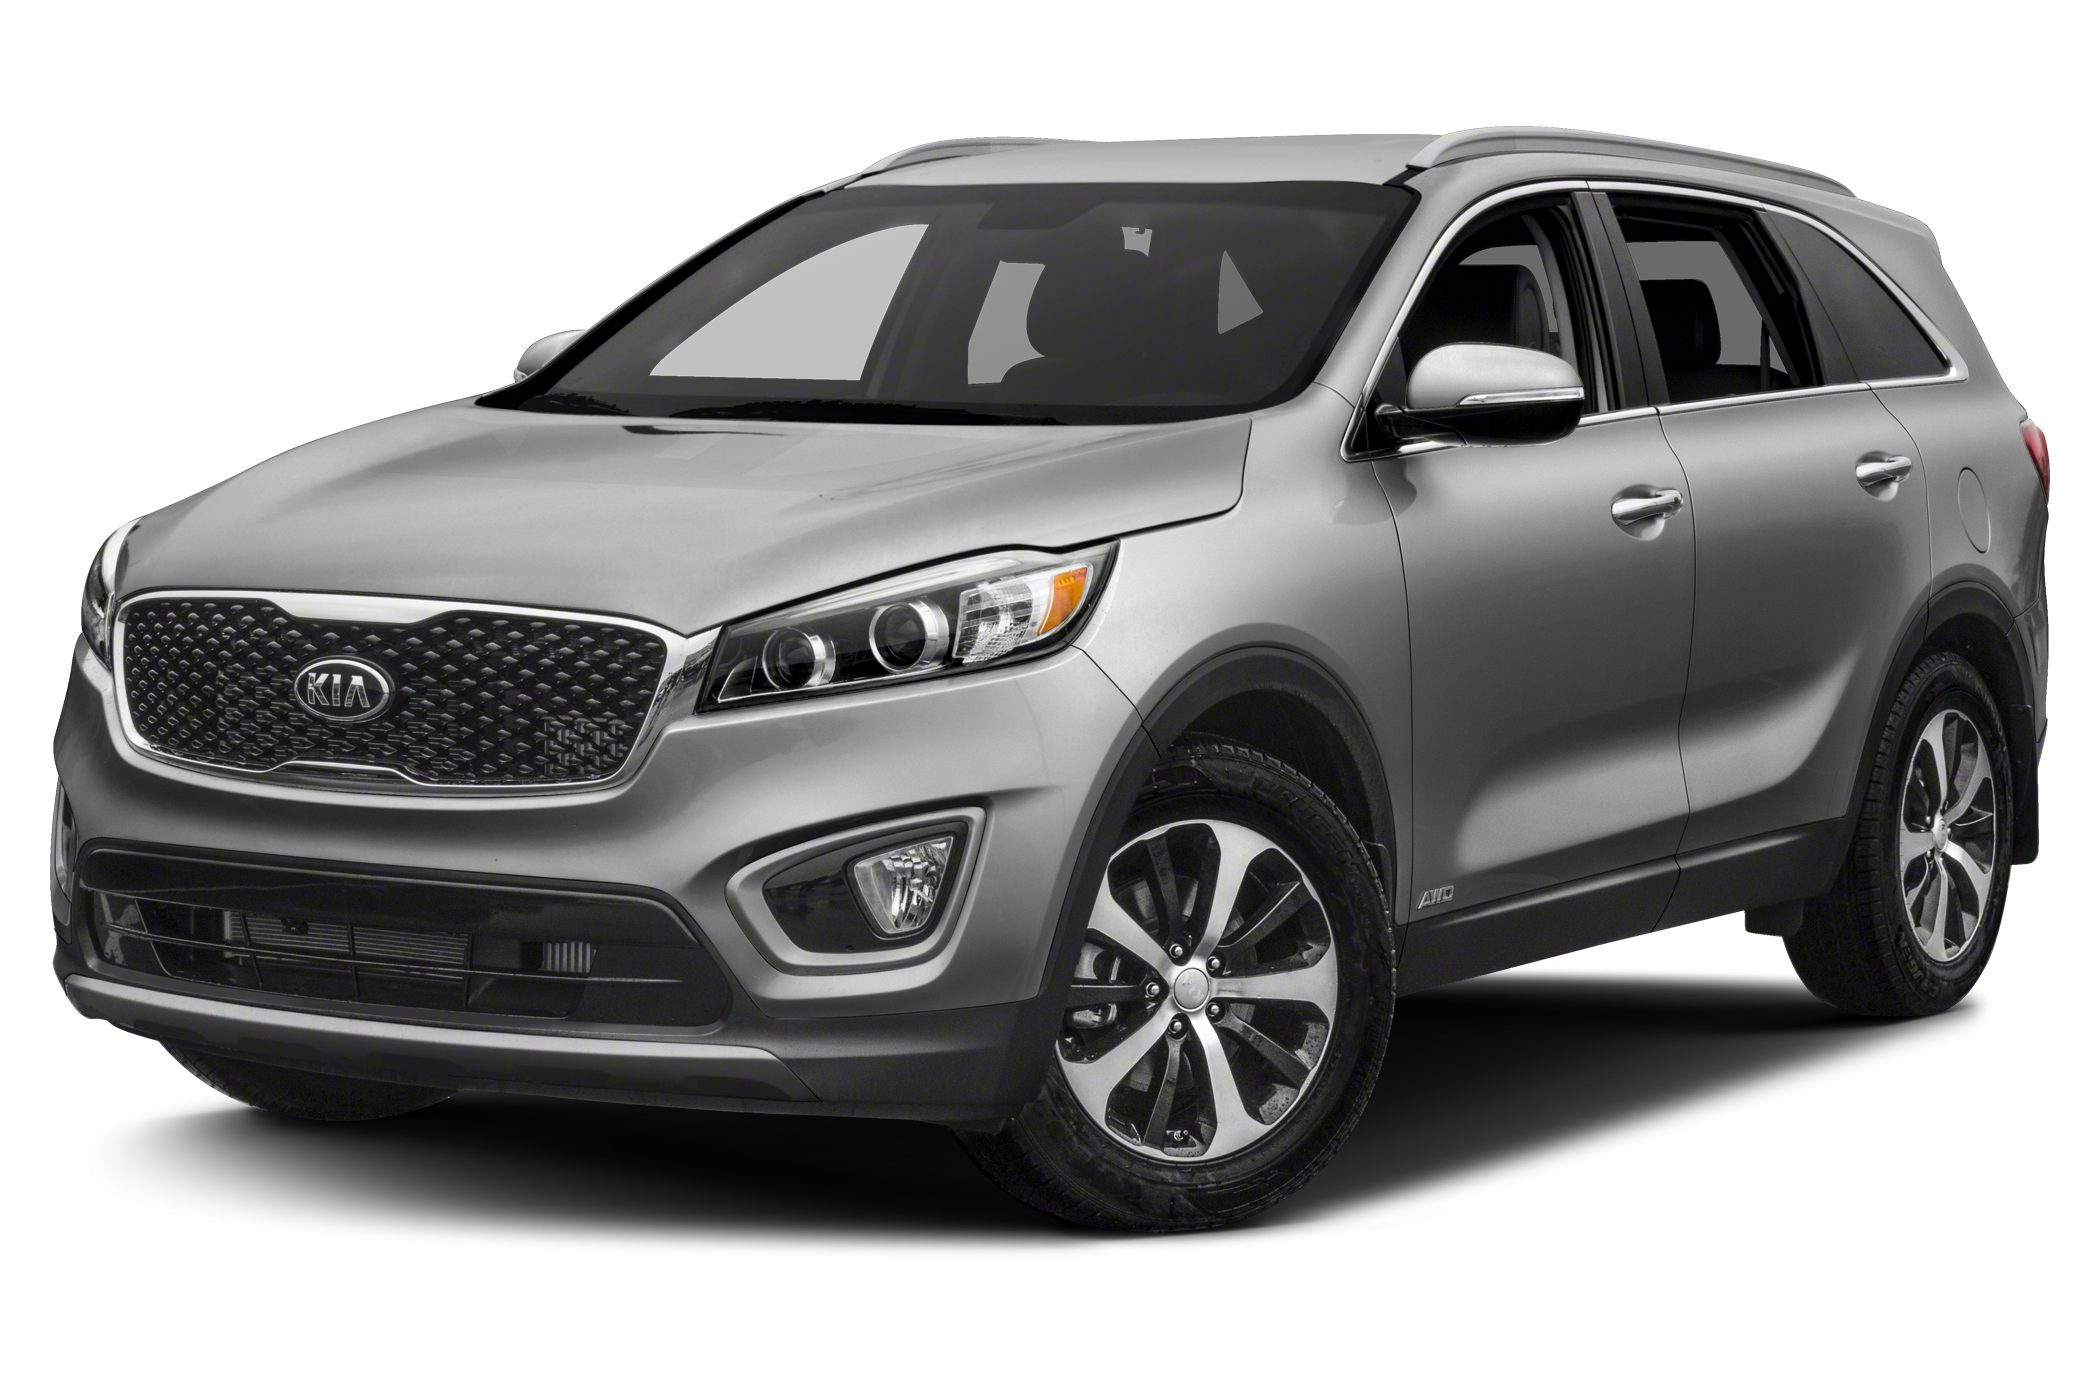 2016 kia sorento ex for sale vin 5xyphda10gg